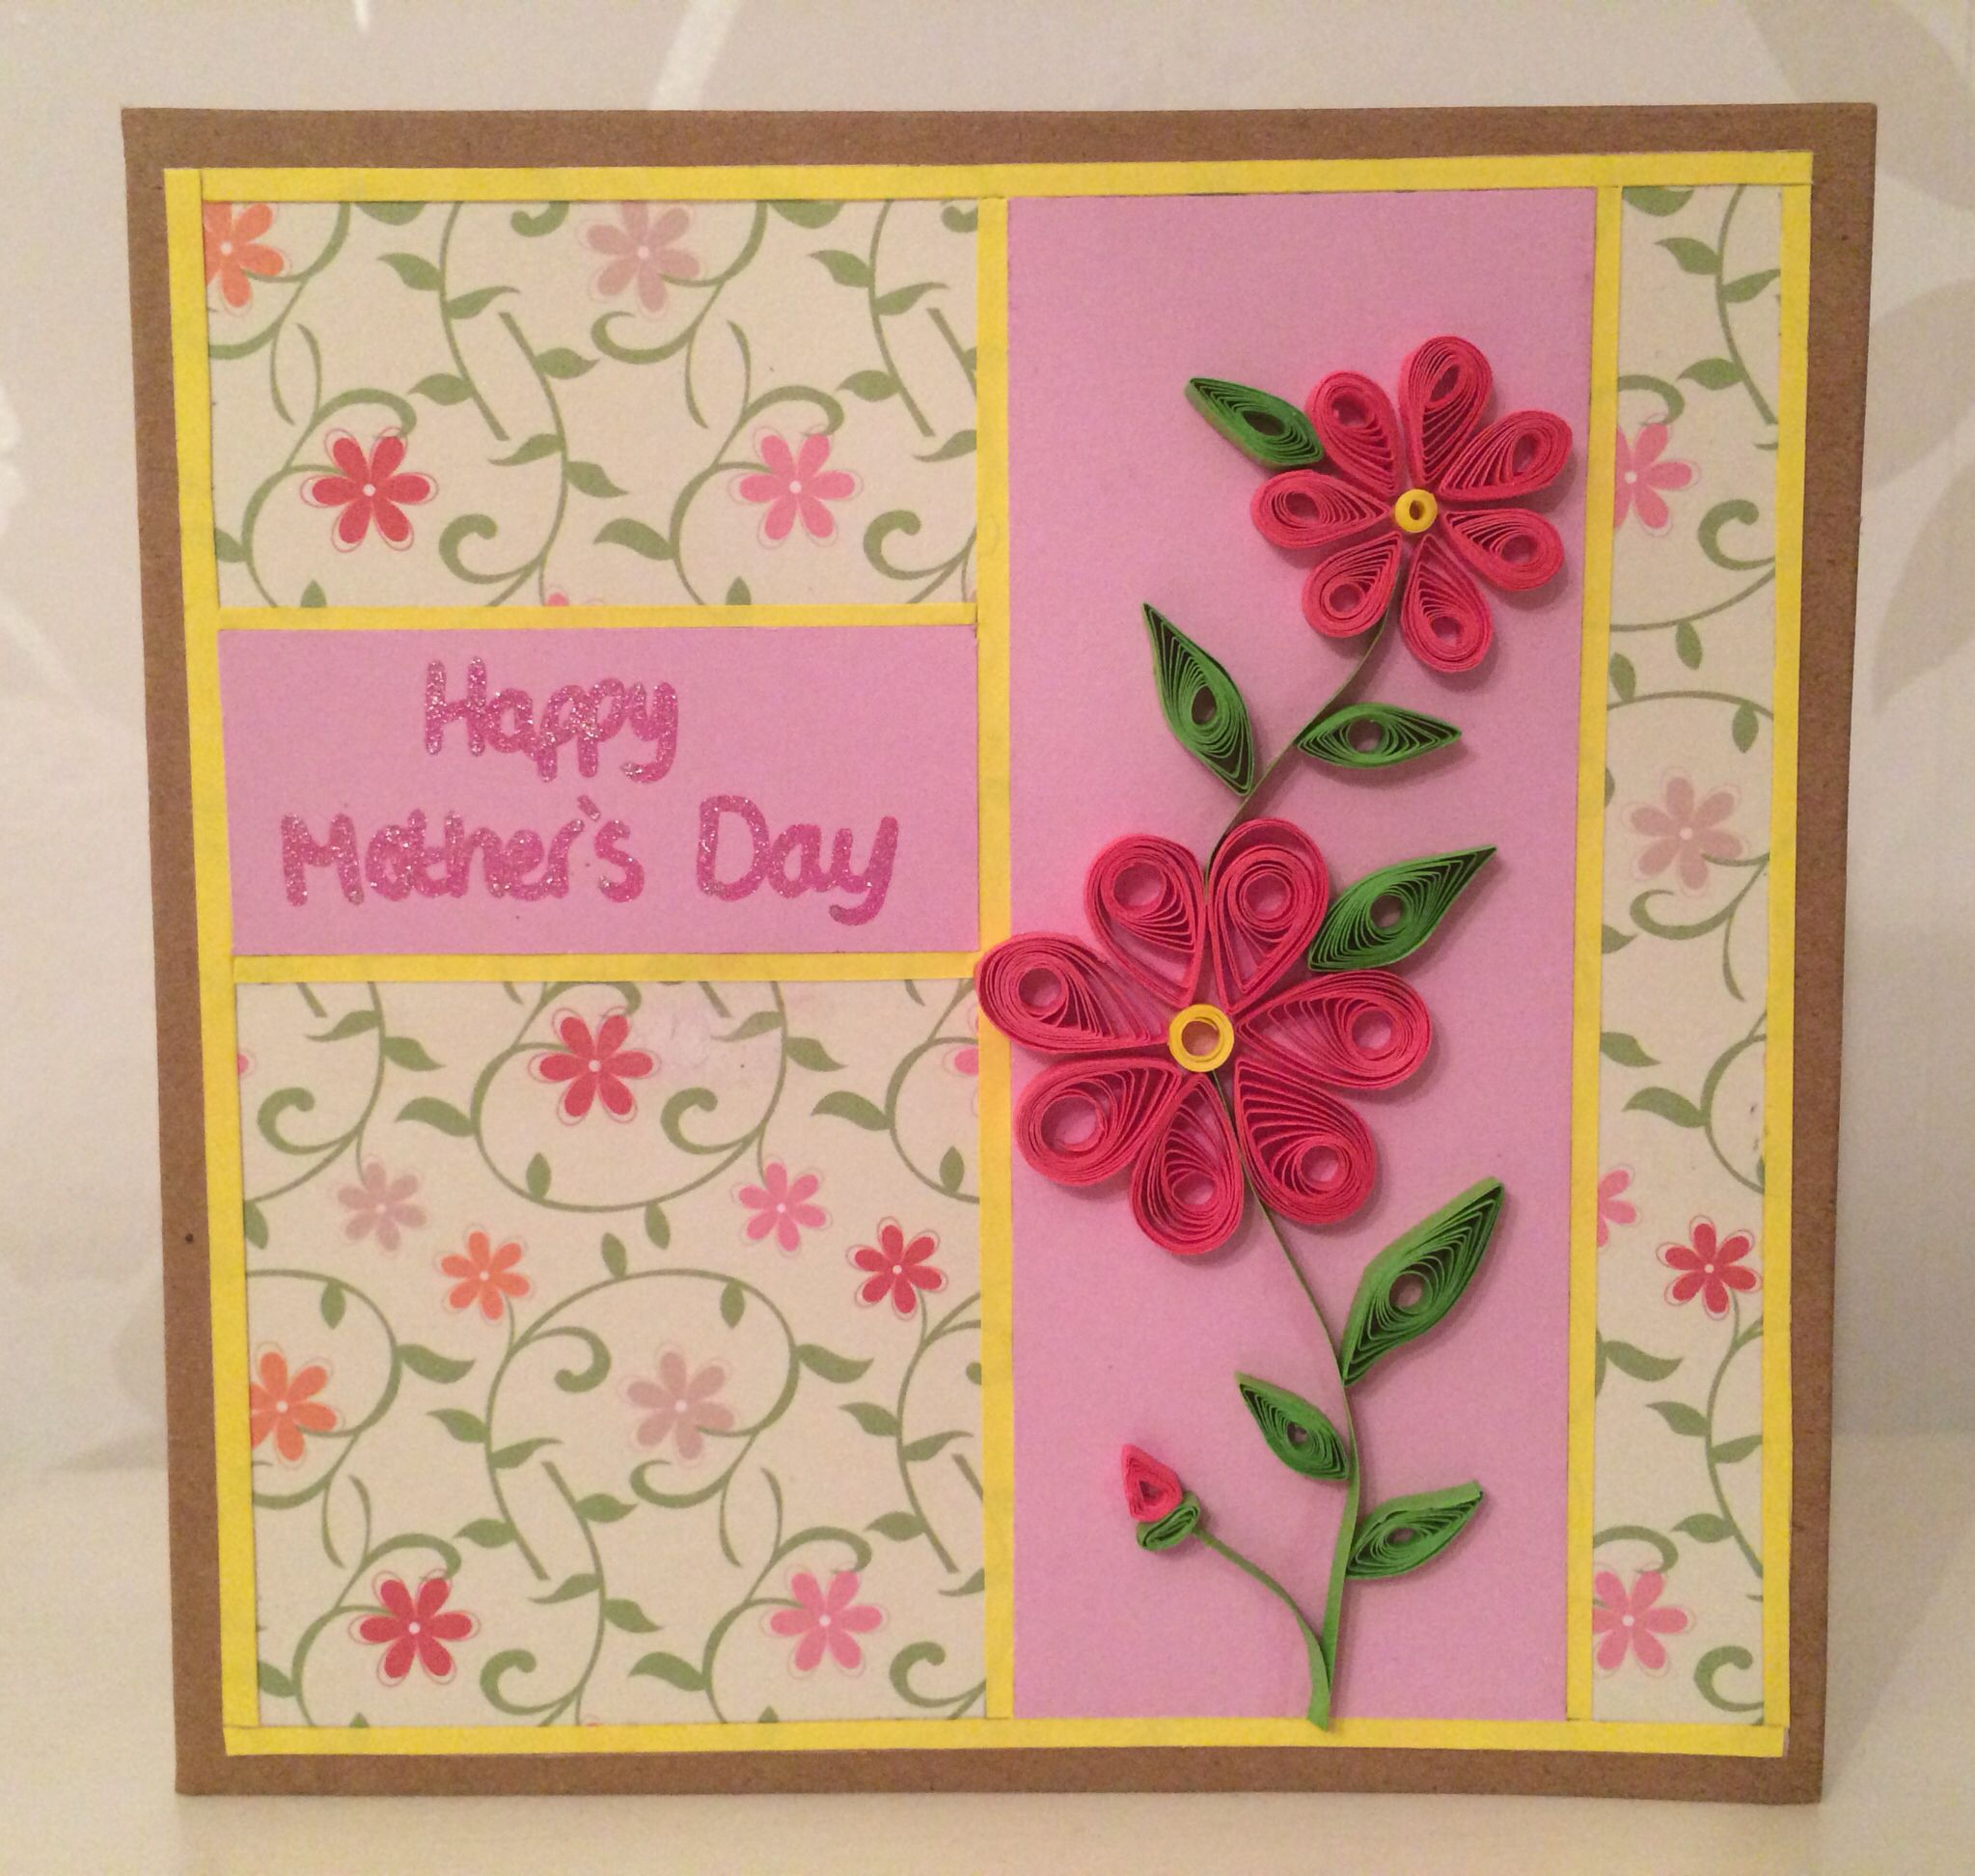 Handmade quilled flowers motherus day card my handmade cards